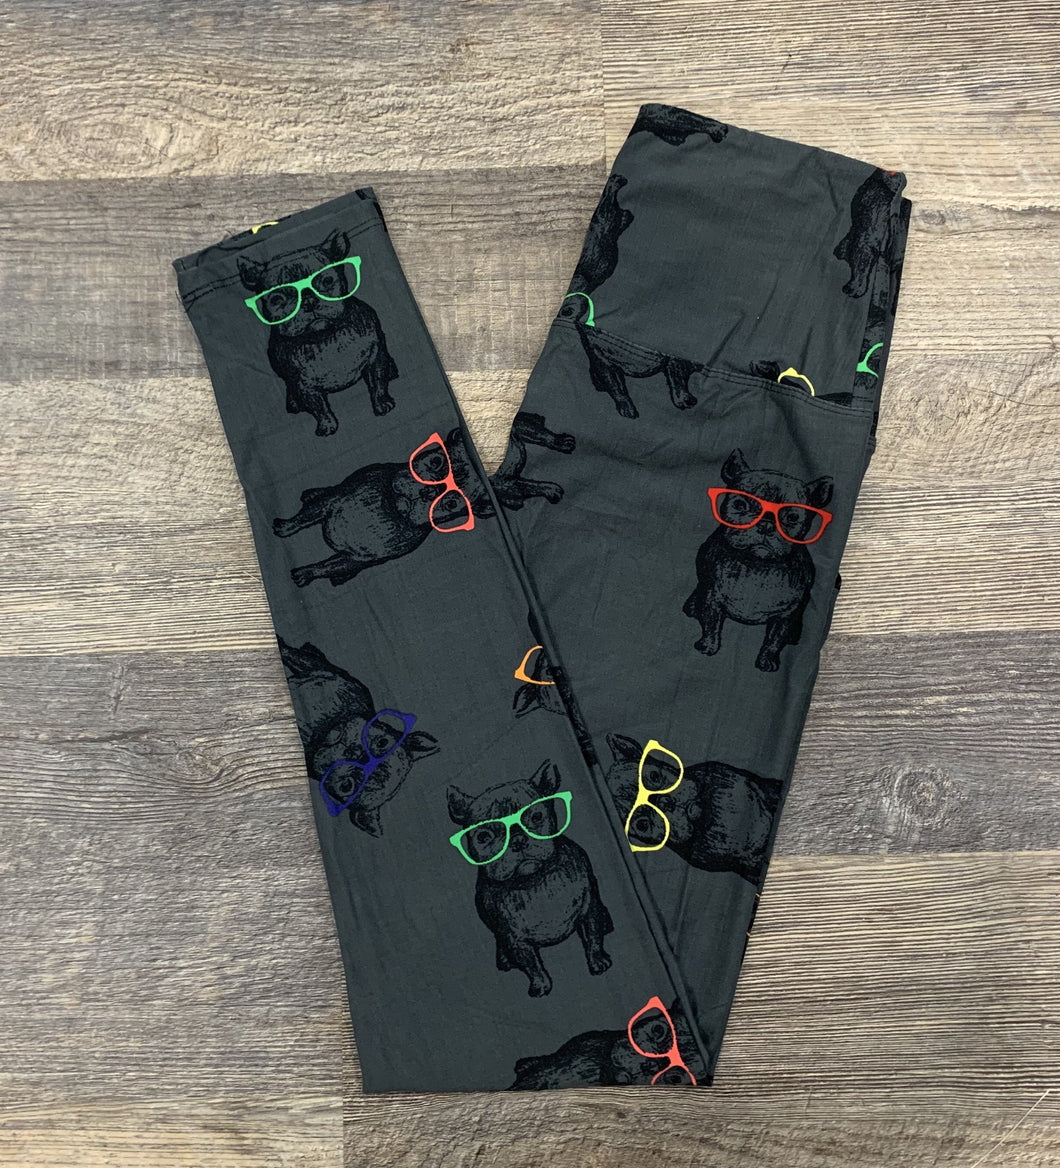 Dogs with Glasses Leggings